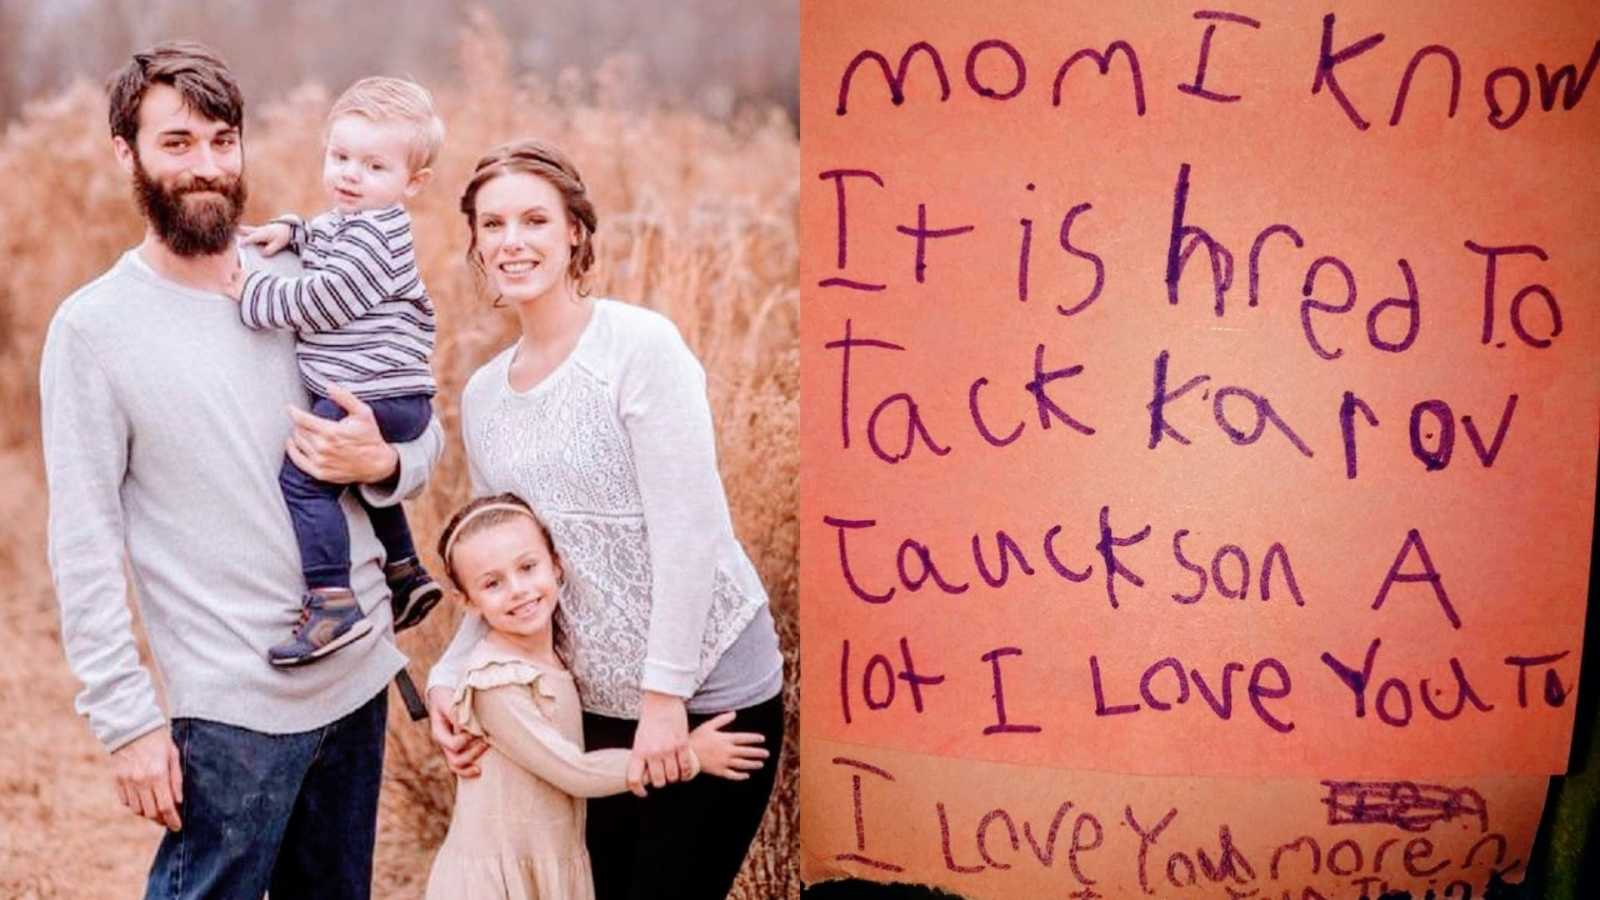 A family with two children stand in a field and a note written in purple ink on a post-it note